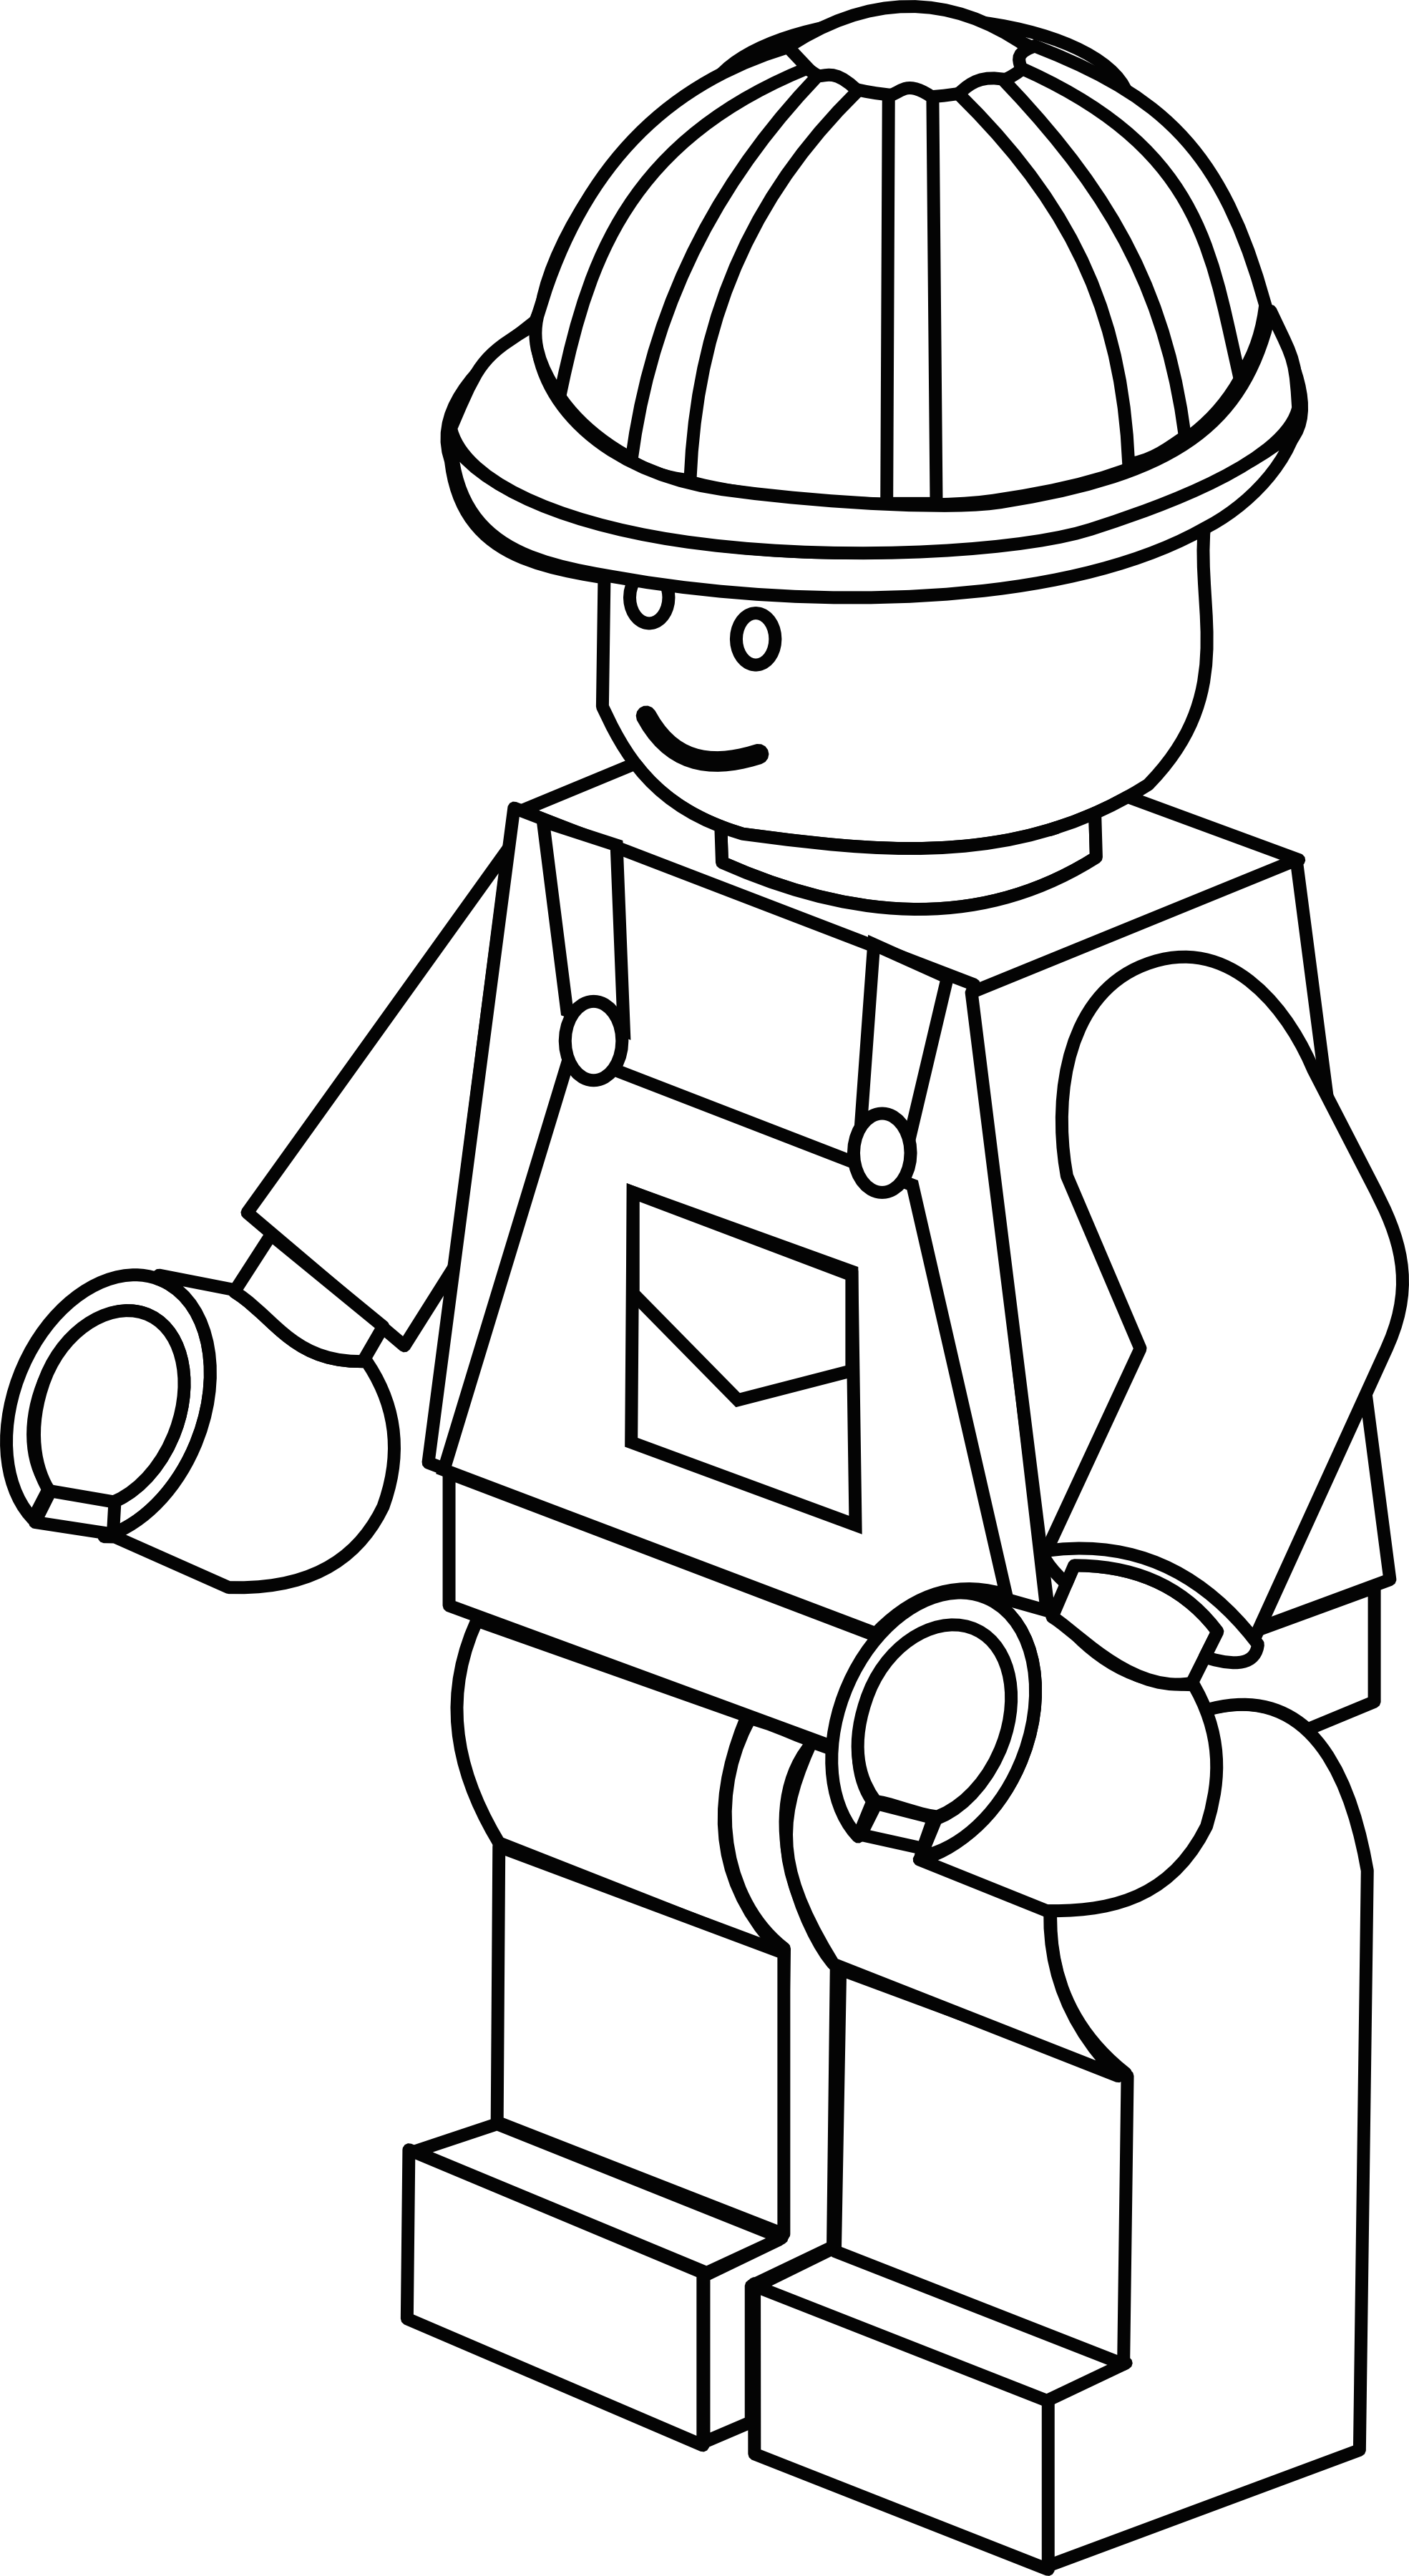 1969x3601 More Complex Lego Figure Colouring Sheet Lego Birthday